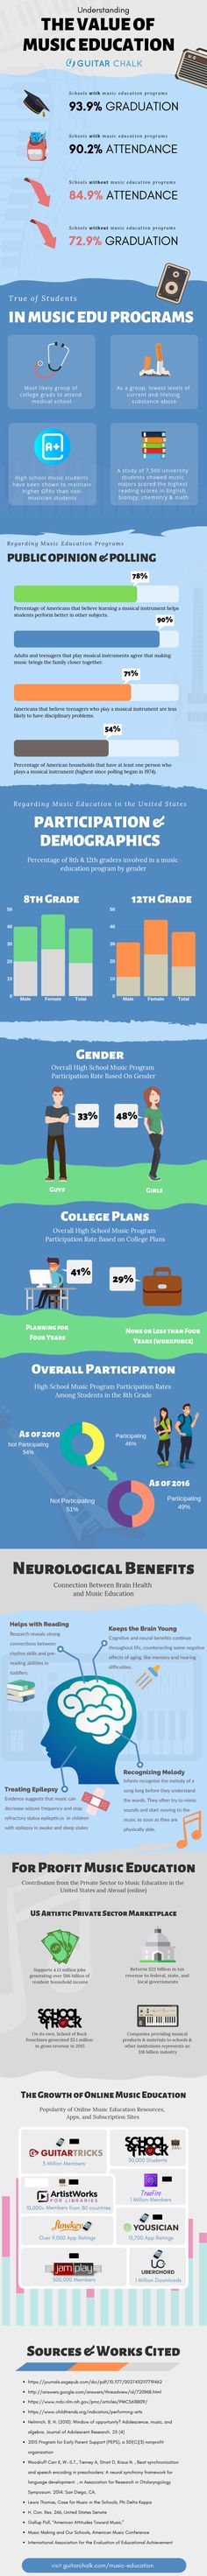 An infographic focusing on music education statistics in both the public and private sector of the United States and abroad. Benefits Of Music Education, Music Education Activities, Online Guitar Lessons, Guitar Tutorial, Elementary Music, Music Therapy, Private Sector, Public, Schools